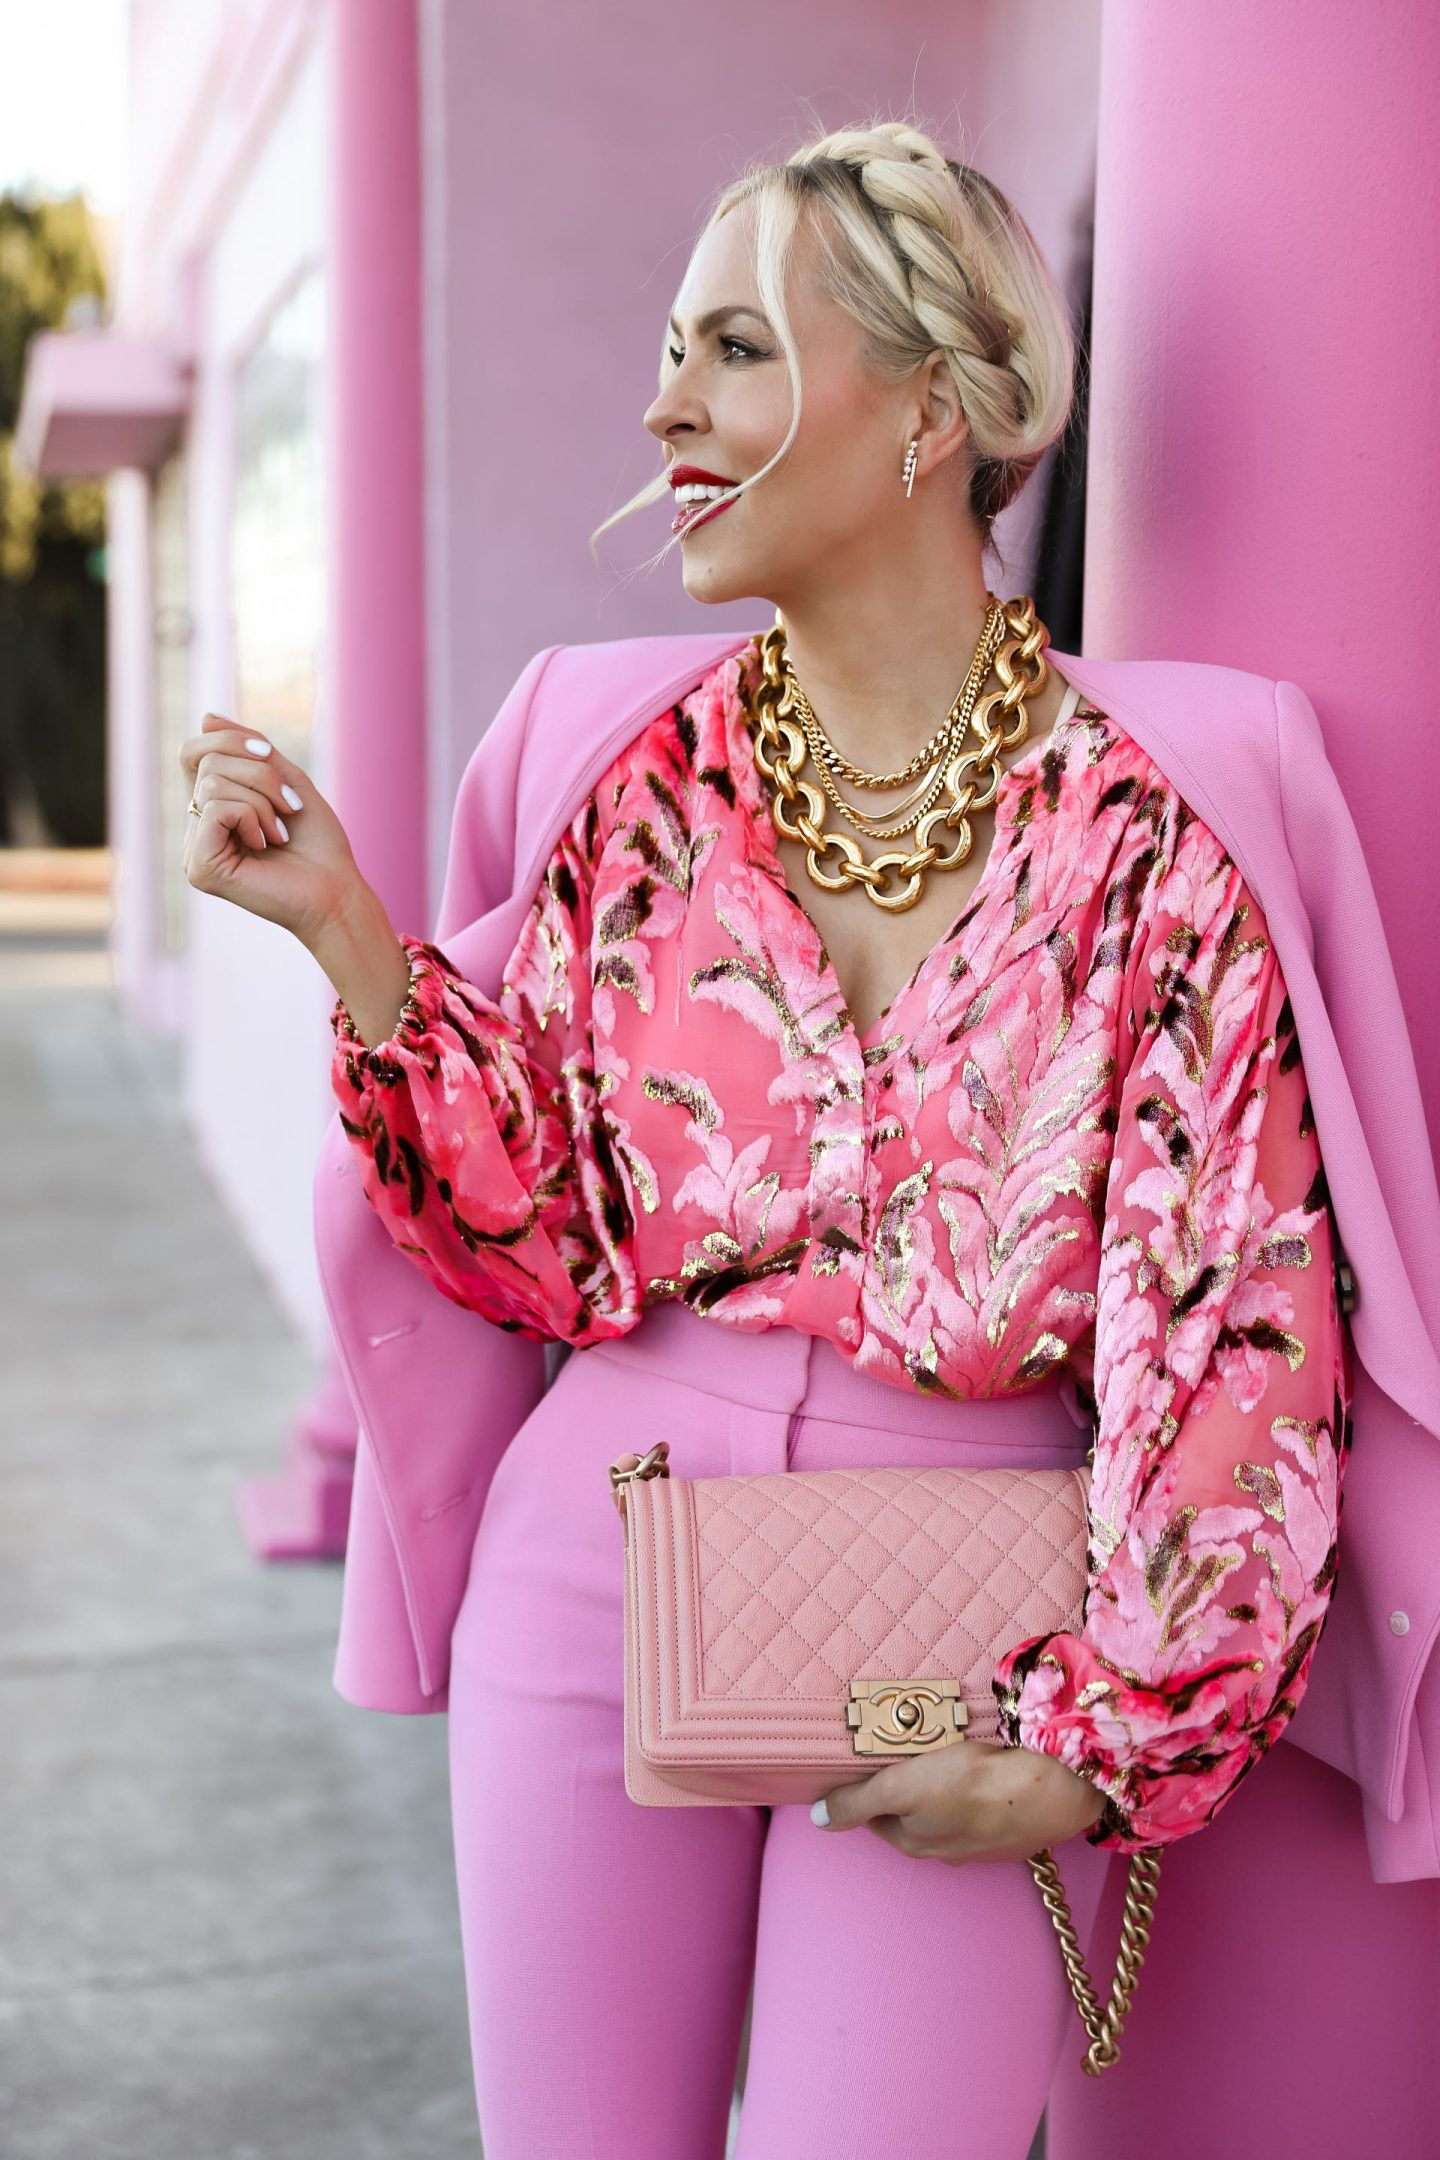 Valentine's Day style ideas and gifts for your galentine's. By San Francisco fashion blogger Lombard & Fifth Veronica Levy.